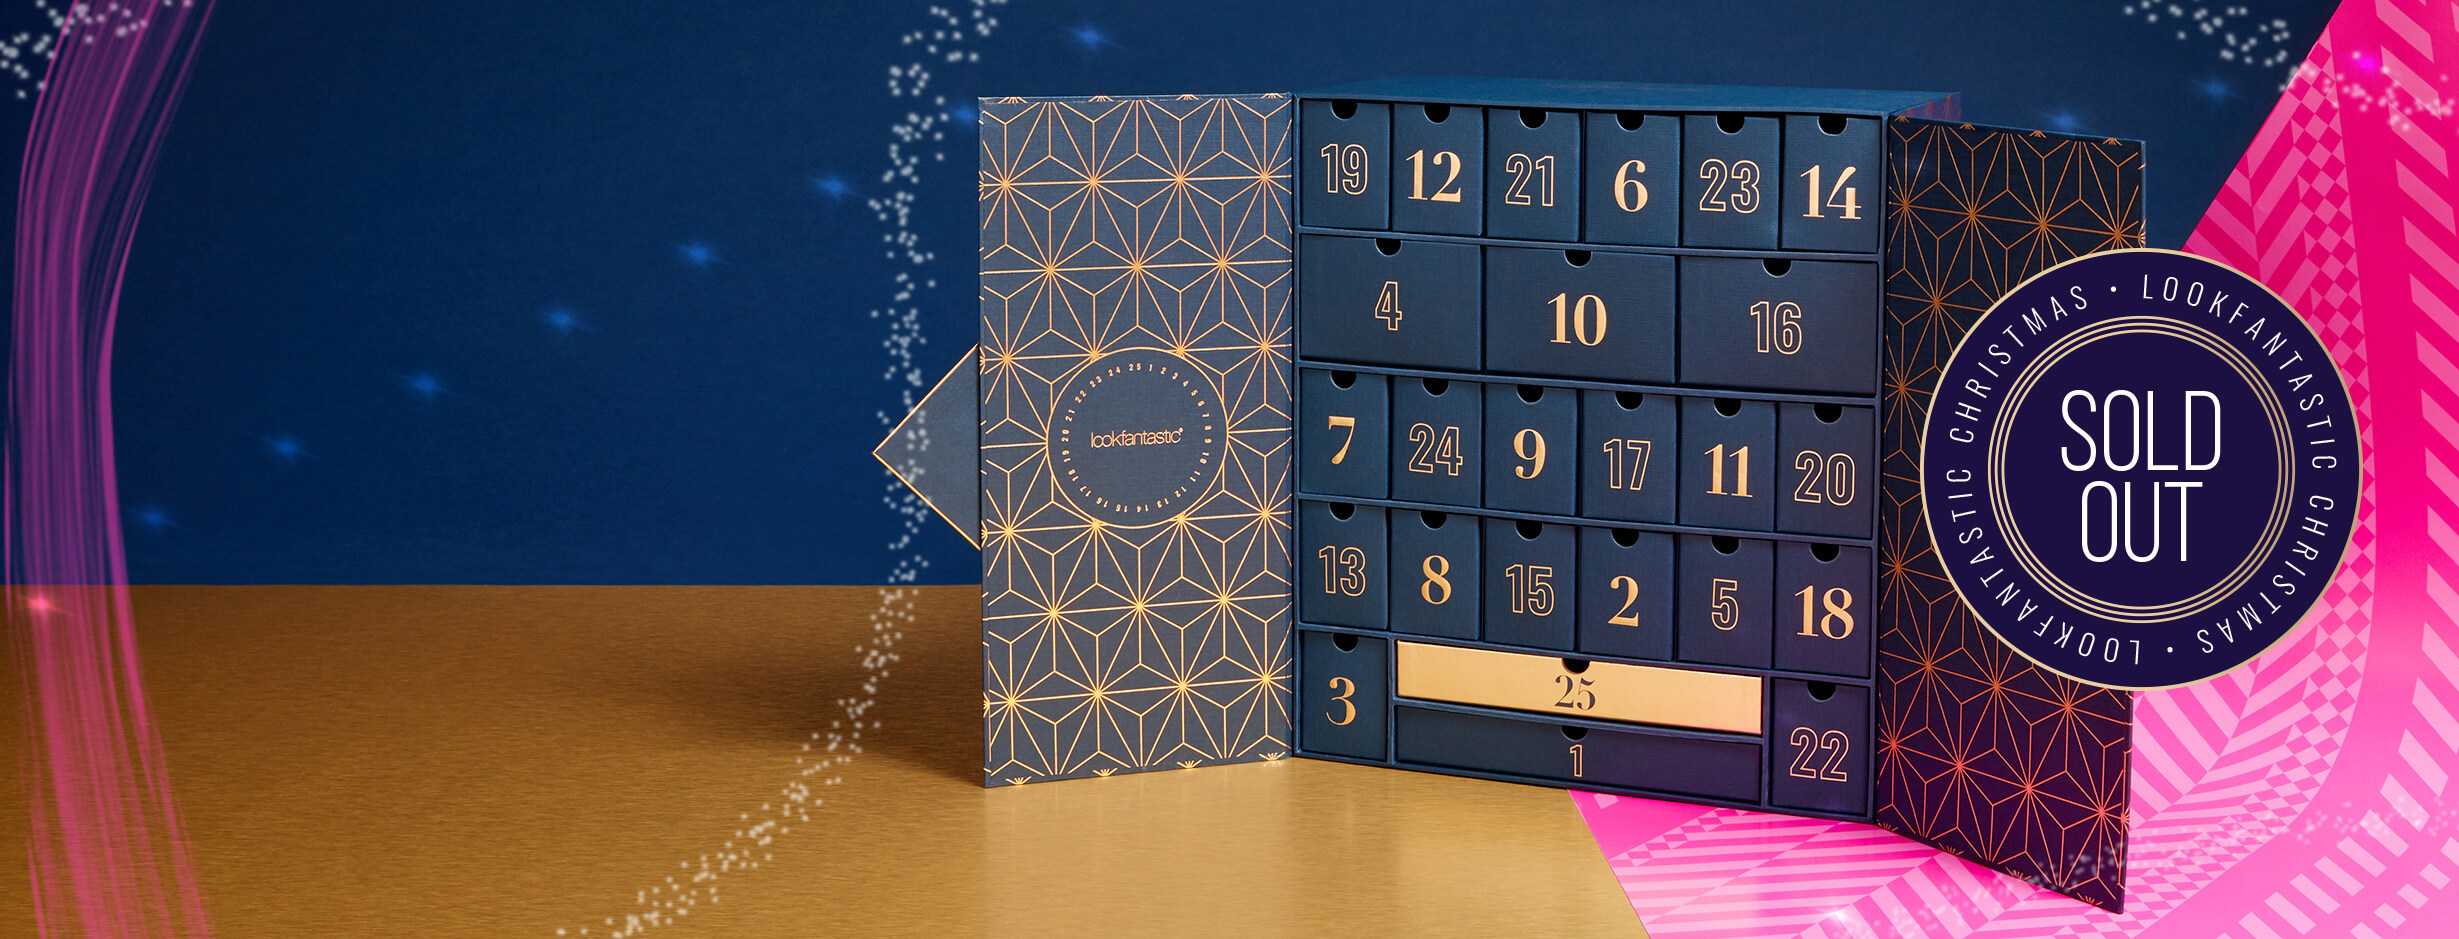 Advent Calendar Sold Out